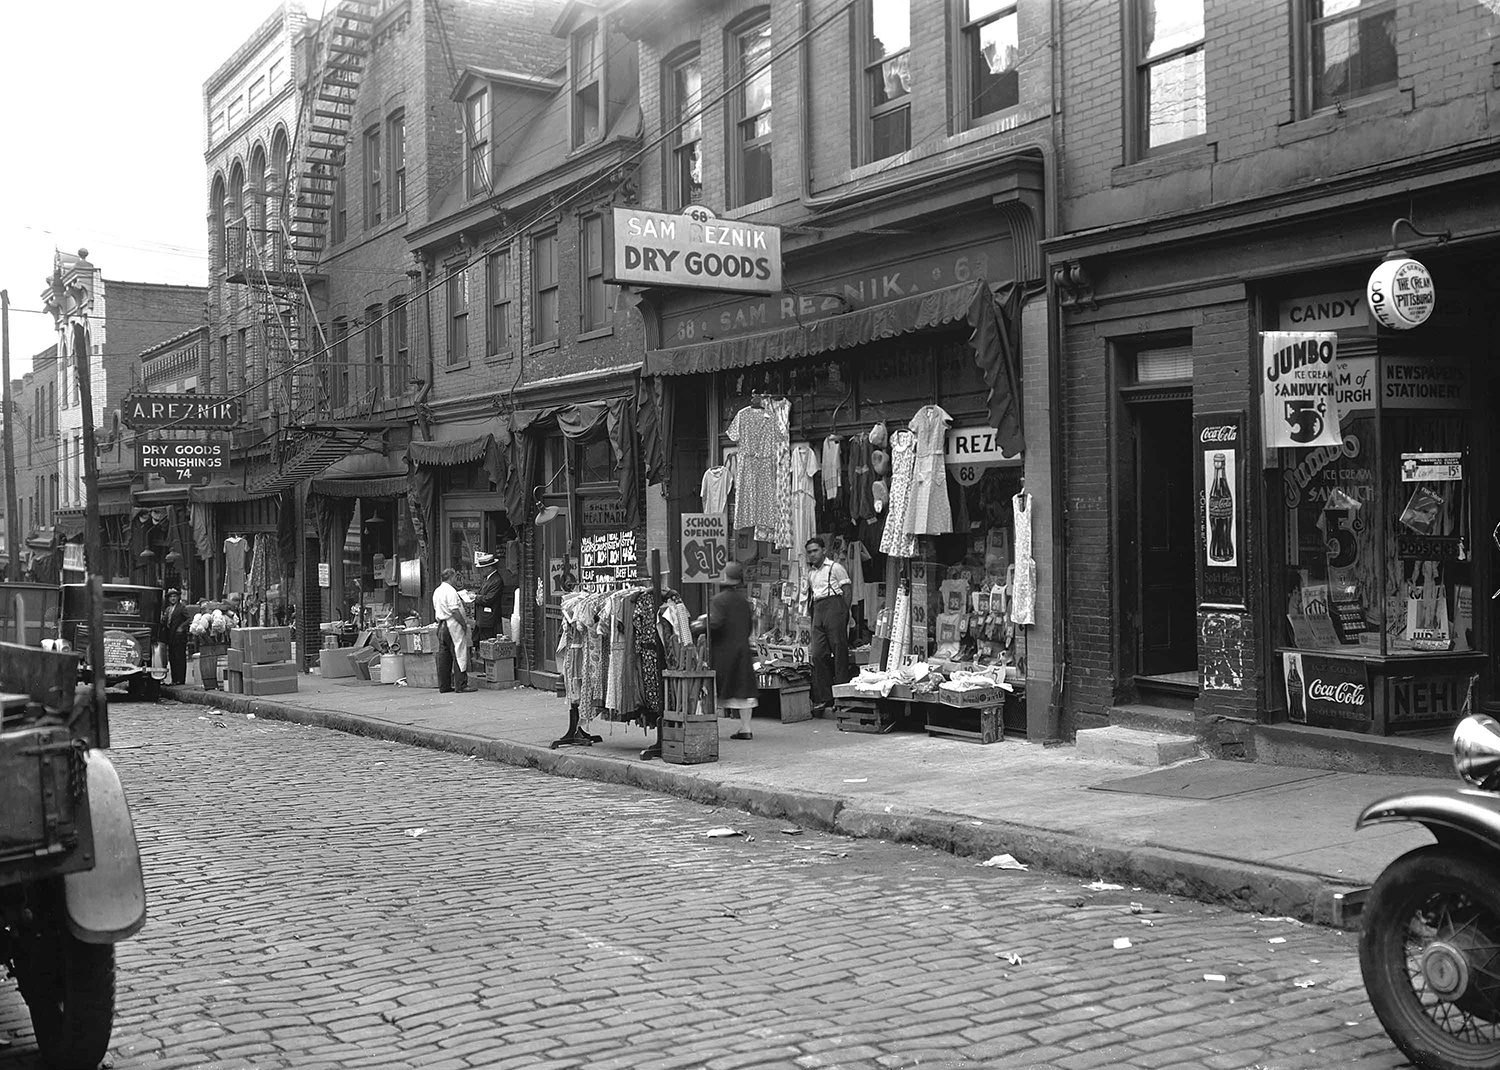 Sam Reznik and his younger brother Abe Reznik immigrated to Pittsburgh around 1904 and both opened dry goods stores of Logan Street. Pittsburgh City Photographer Collection, Archives & Special Collections, University of Pittsburgh.